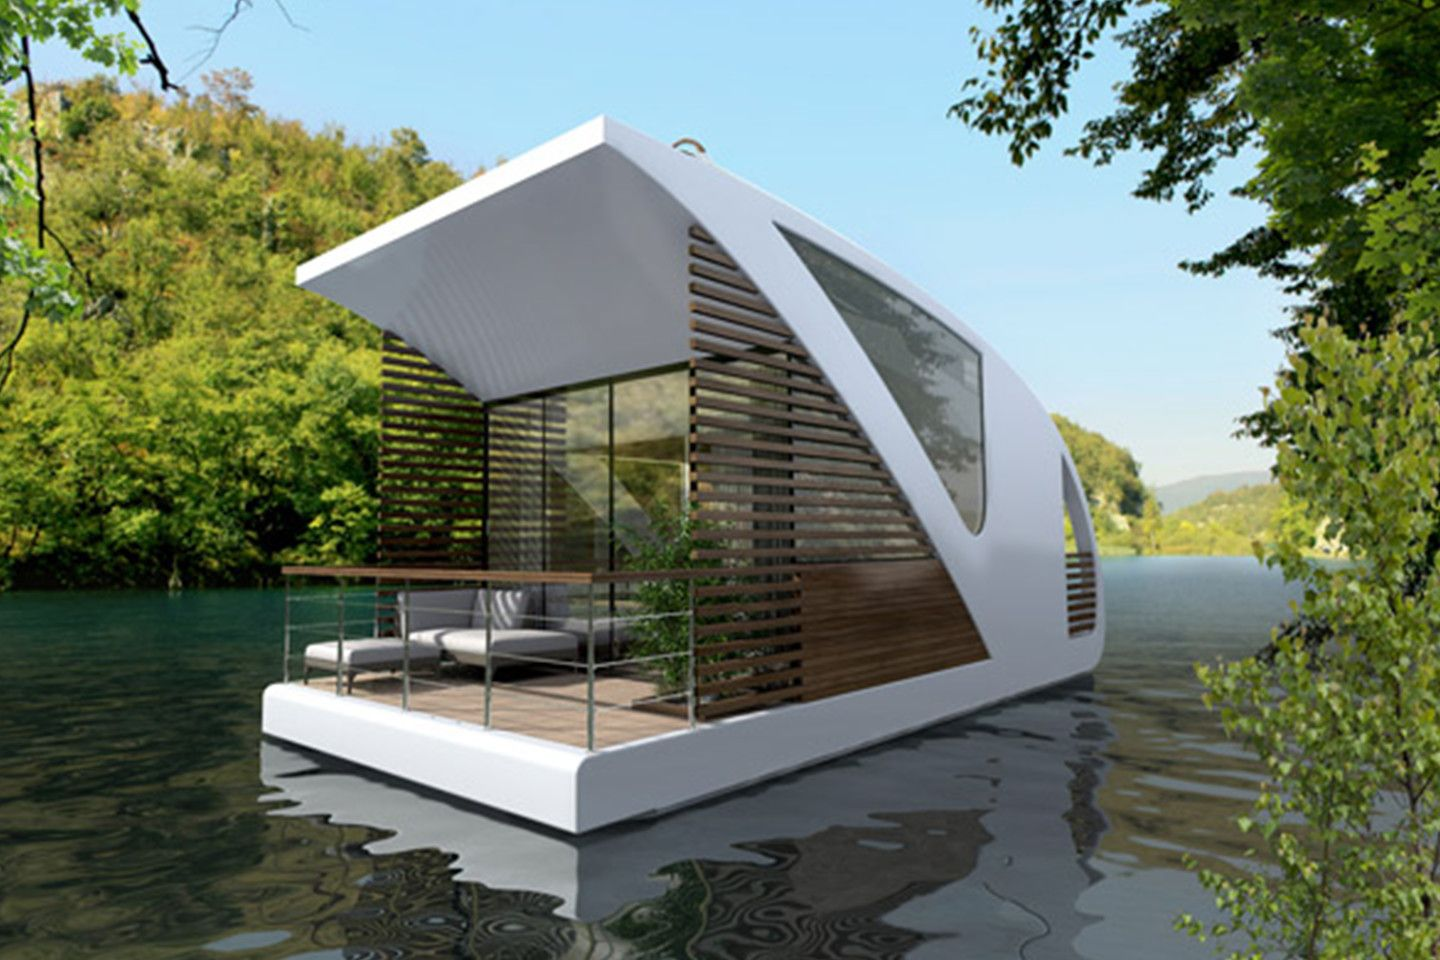 Are floating hotels the next big trend in the hospitality industry?